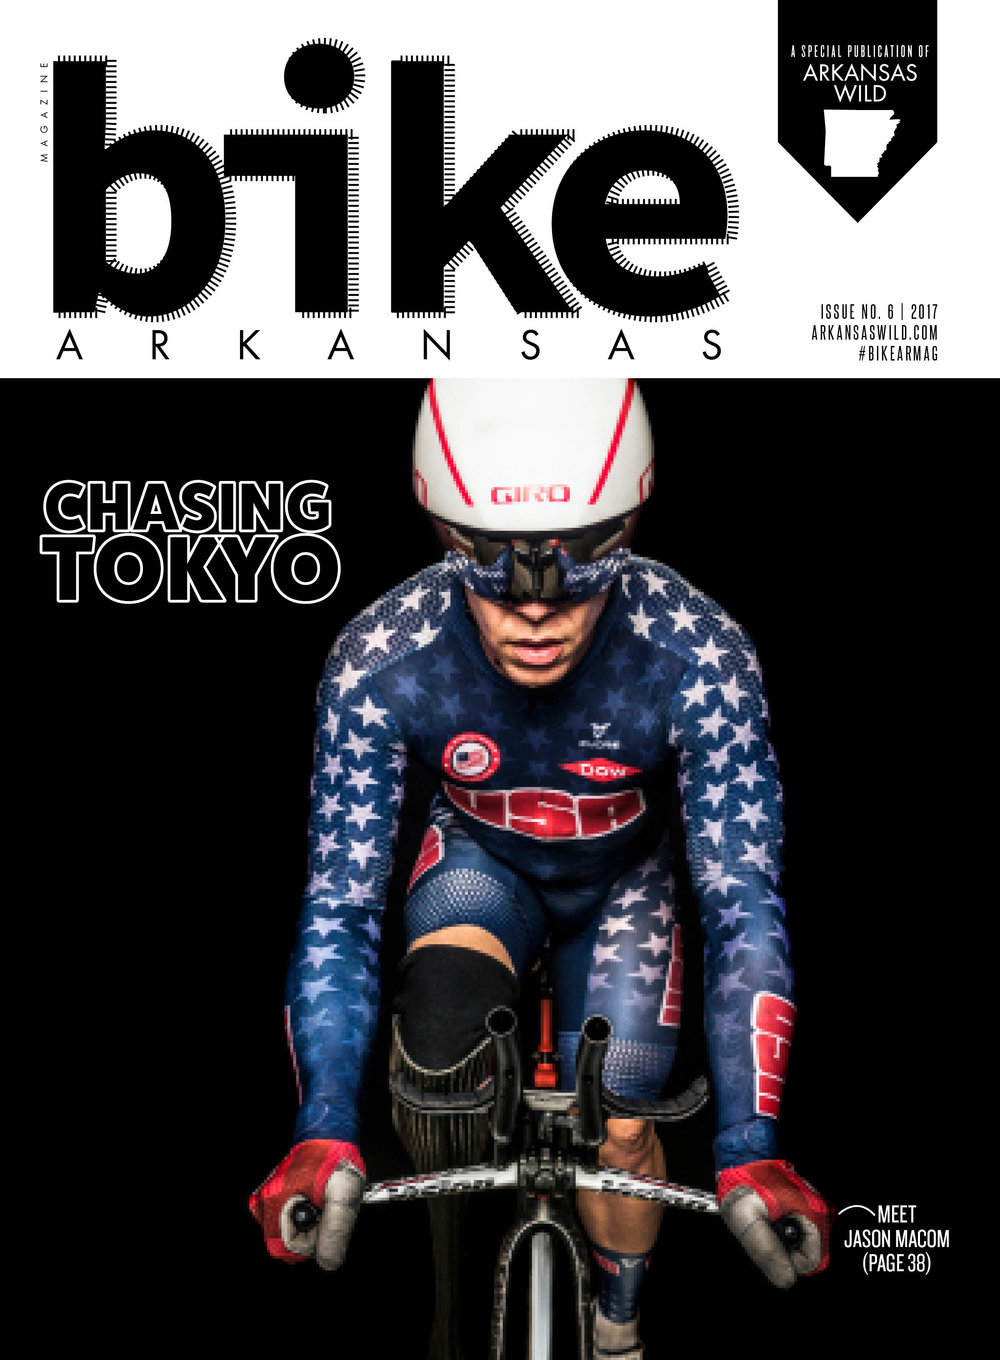 AR WILD BIKE FALL 2017 COVER.jpg